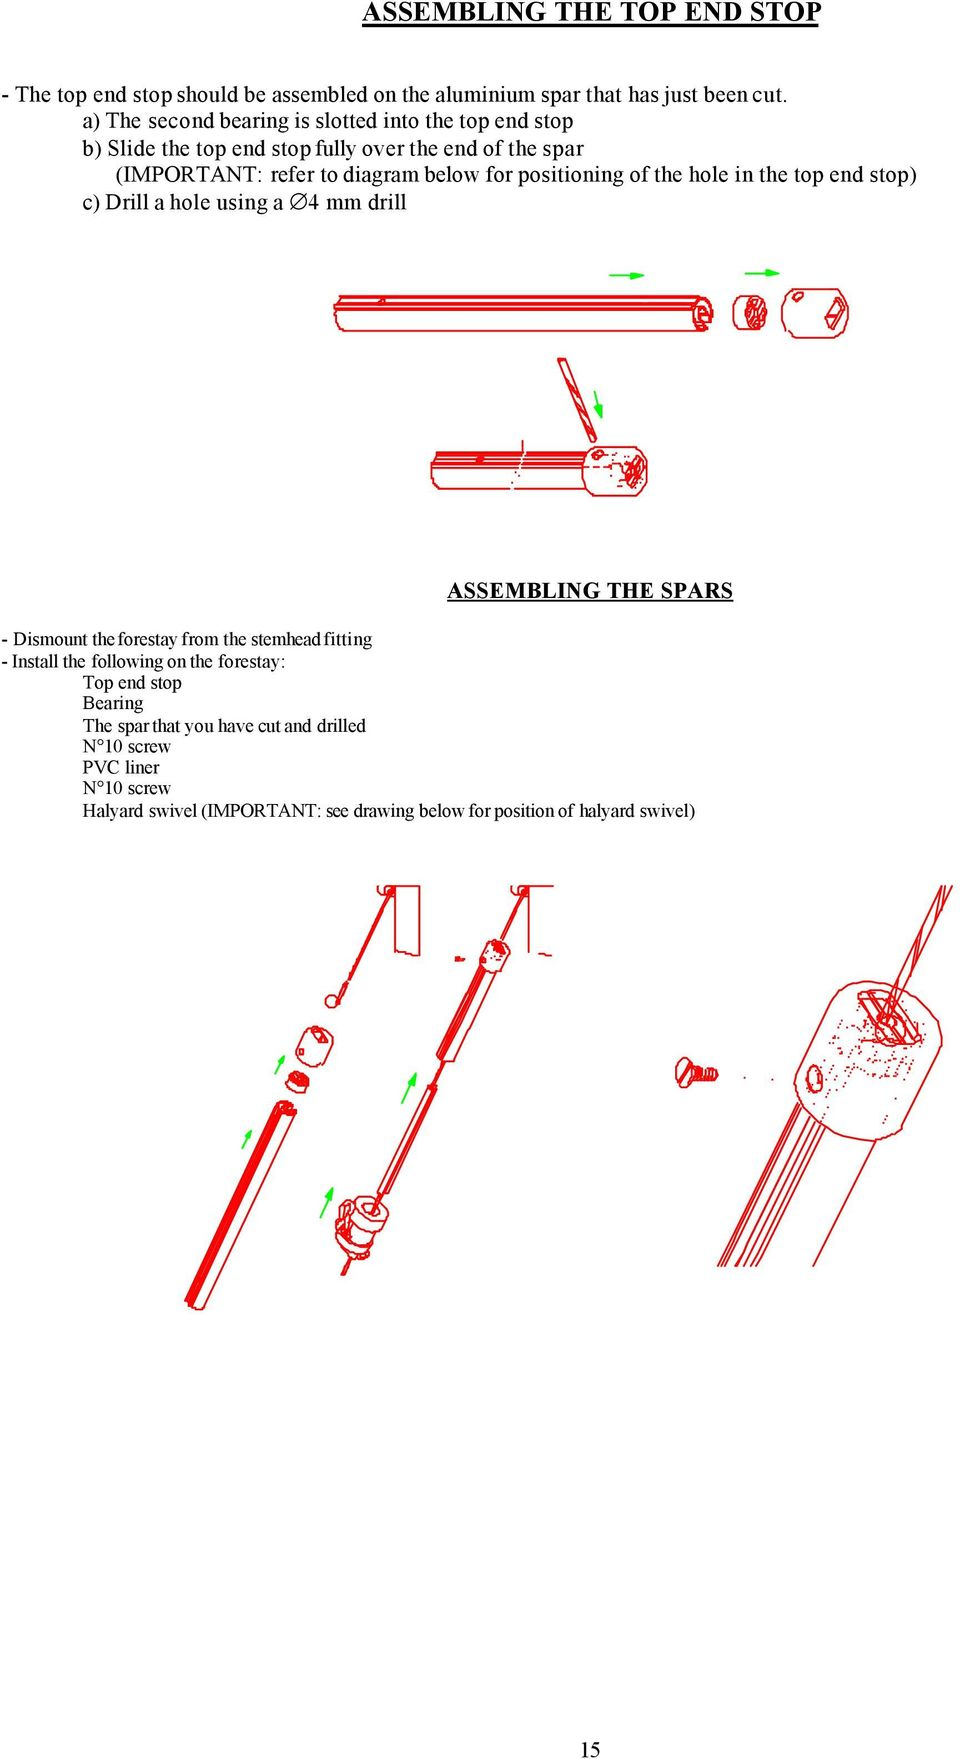 Plastimo Jib Reefing Systems S Series 406 608 810 Pdf Eastwood Guitar Wiring Diagram Positioning Of The Hole In Top End Stop C Drill A Using